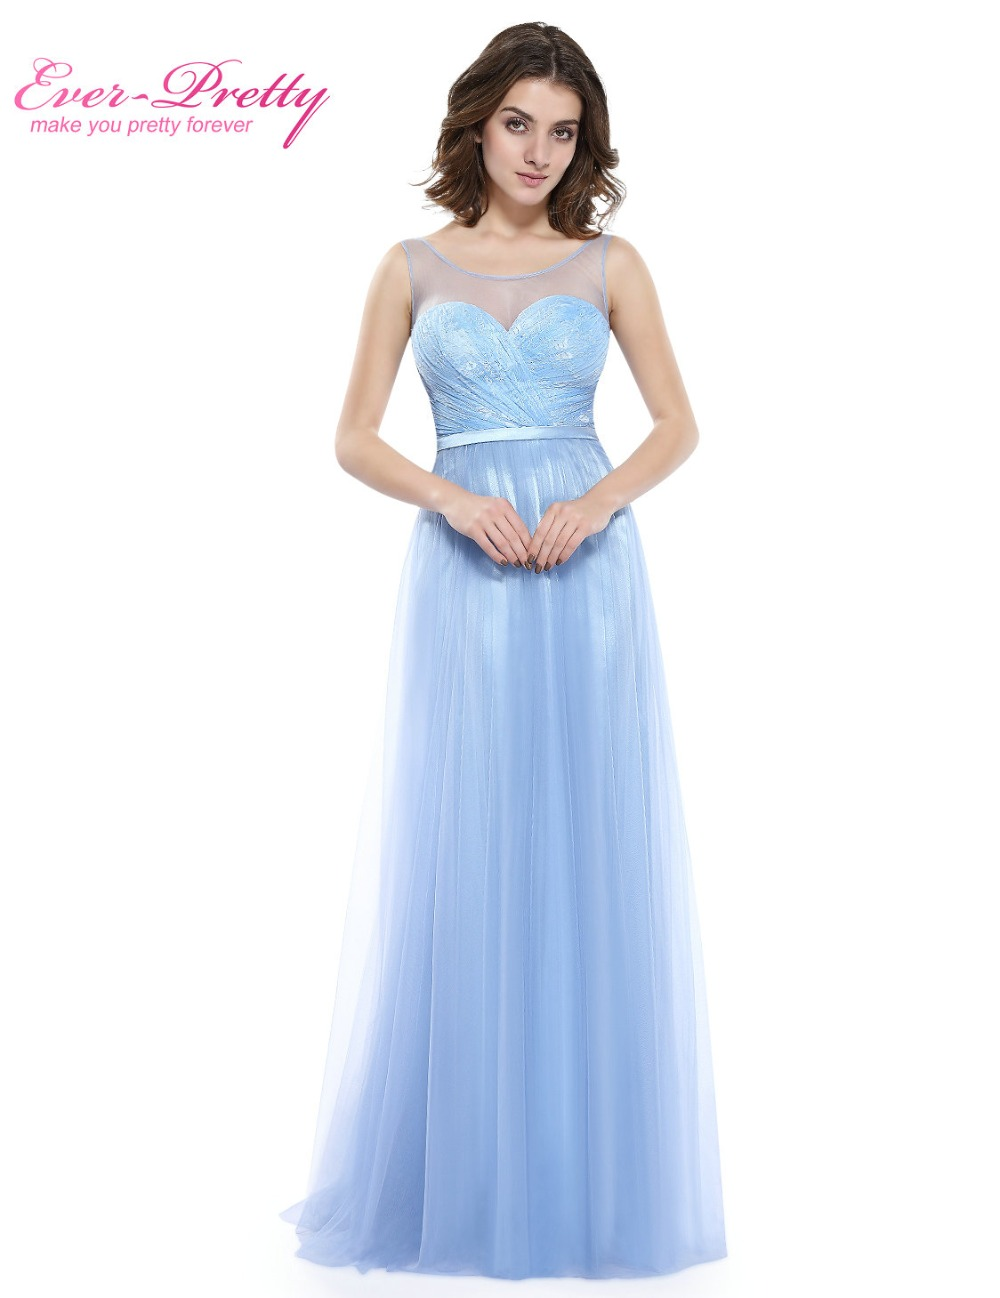 Aliexpress.com : Buy [Clearance Sale] Sexy Ice Blue Prom Dresses ...